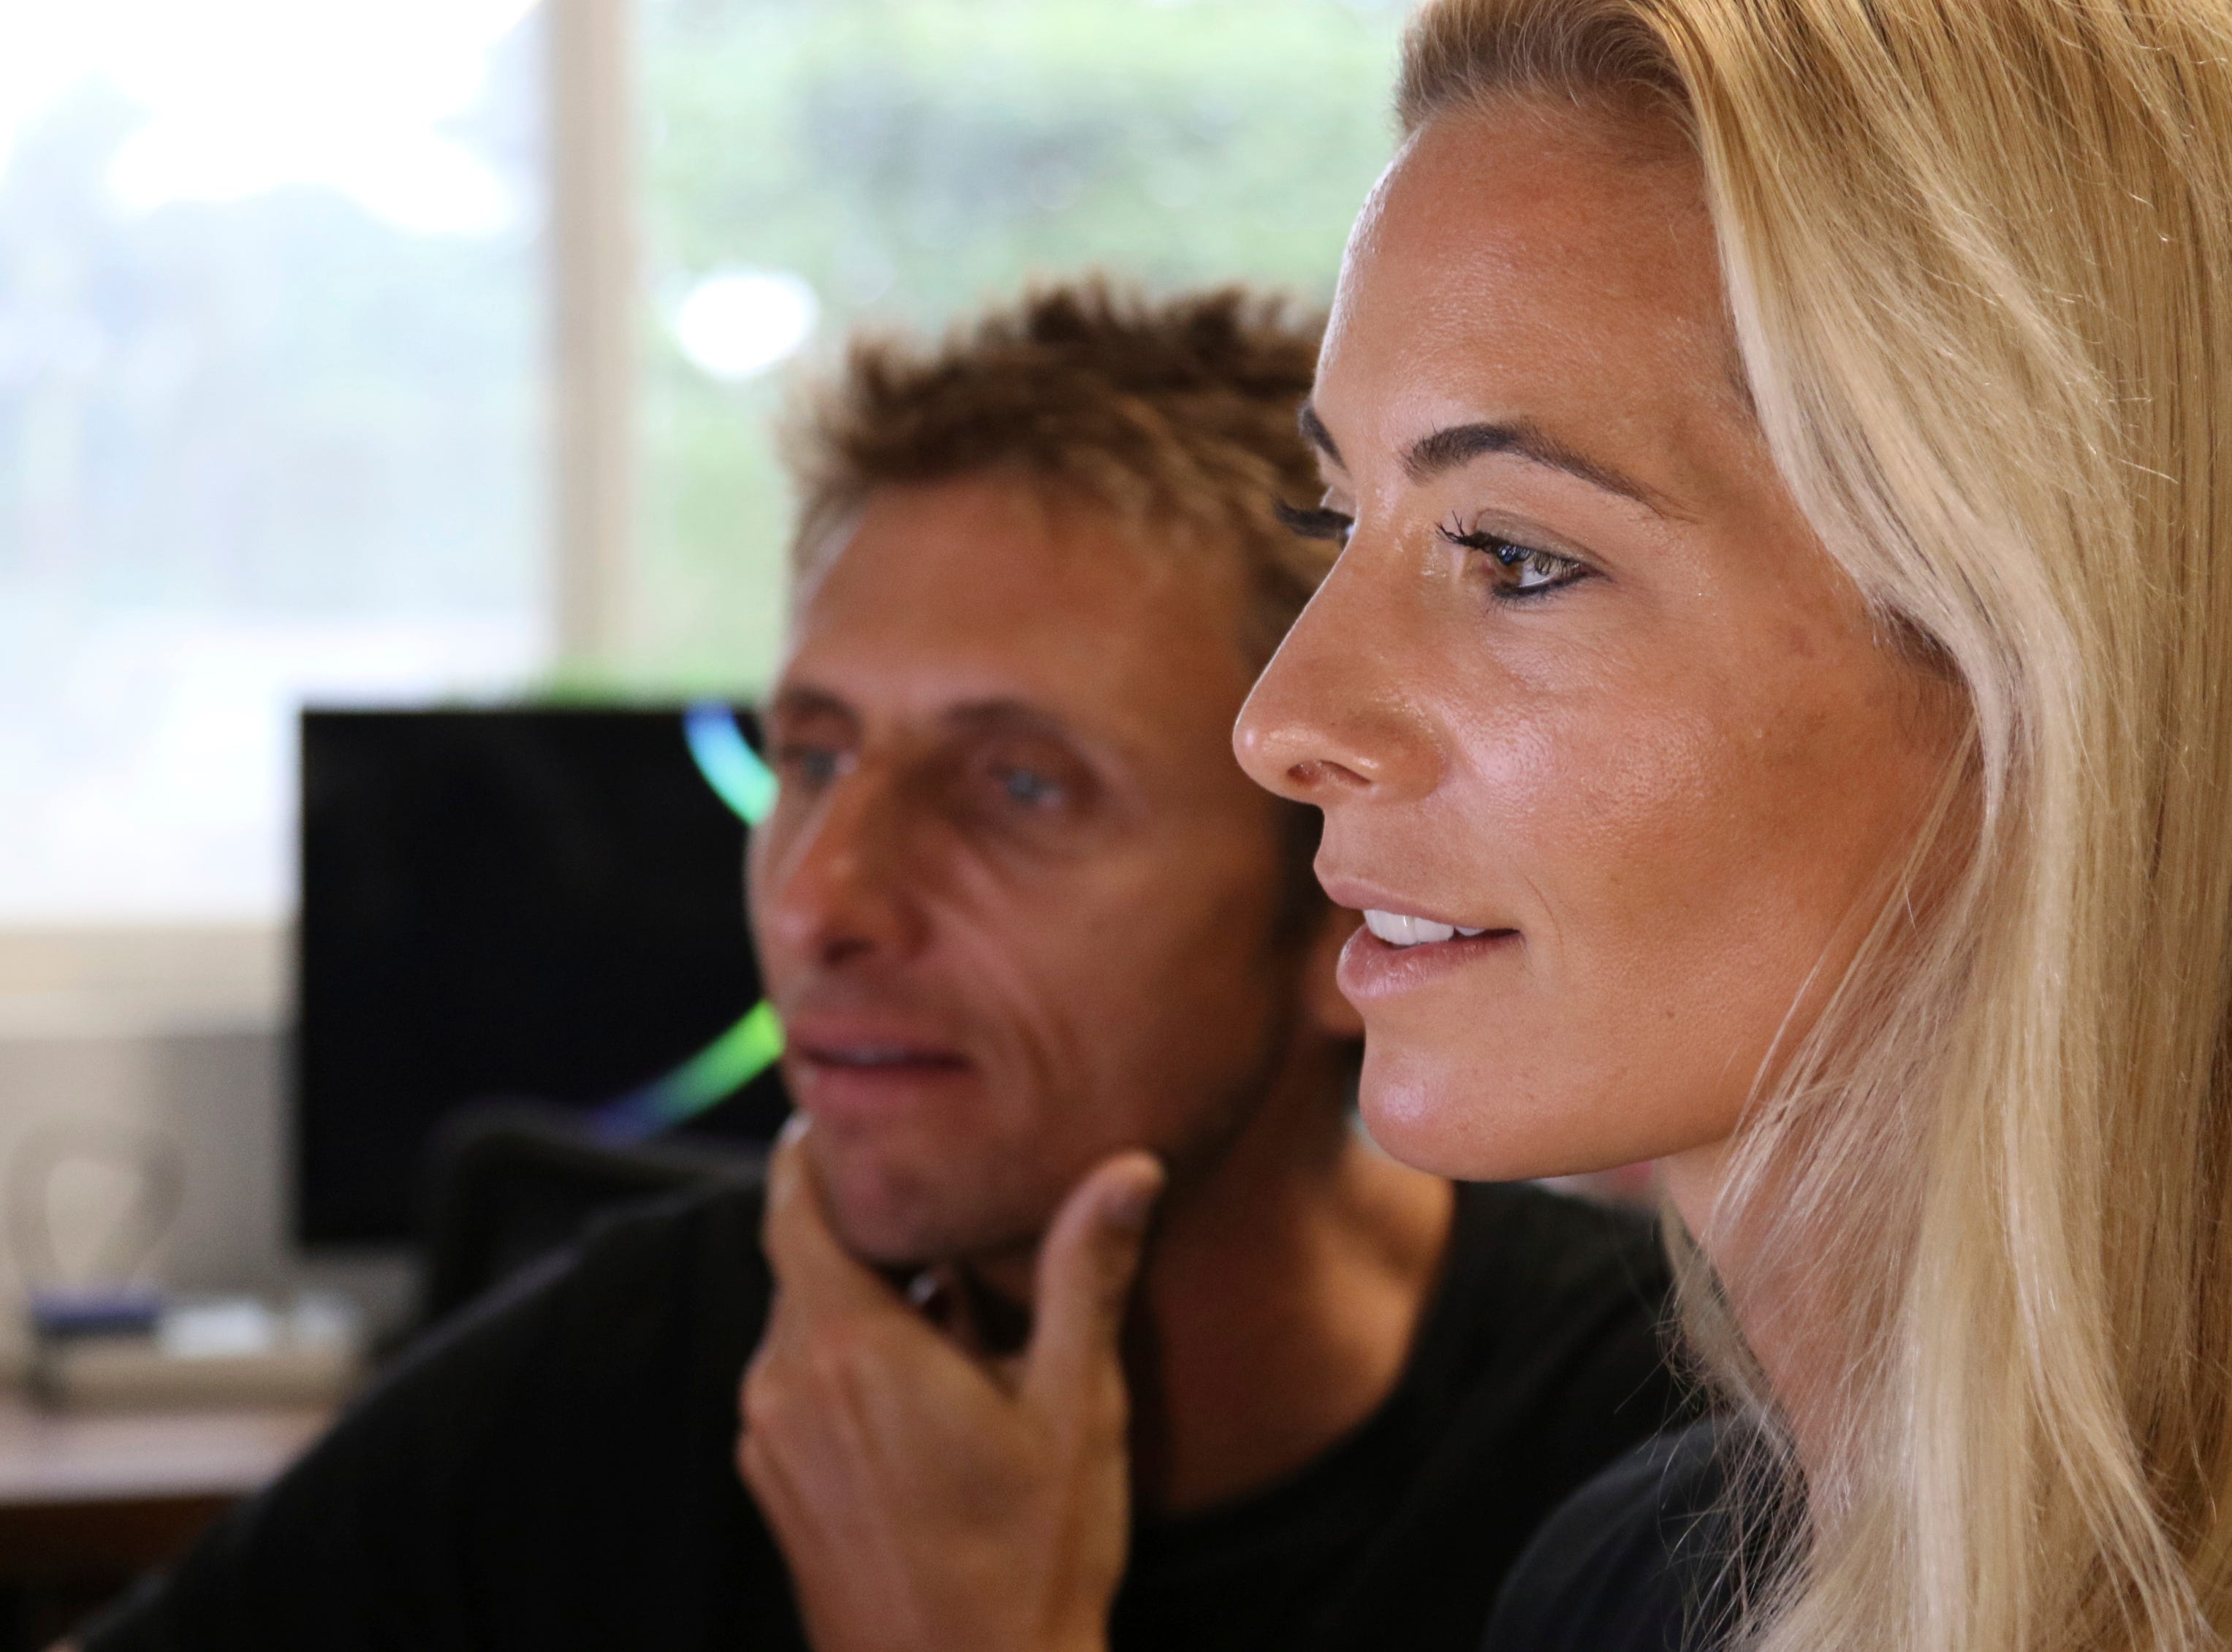 Juan Oliphant, left, and Ocean Ramsey, co-founders of One Ocean Diving and Research, look at footage their encounter with a great white shark, Thursday, Jan. 17, 2019 in Haleiwa, Hawaii.  The two shark researchers who came face-to-face with what could be one of the largest great whites ever recorded, are using their encounter as an opportunity push for legislation that would protect sharks in Hawaii.   (AP Photo/Caleb Jones)